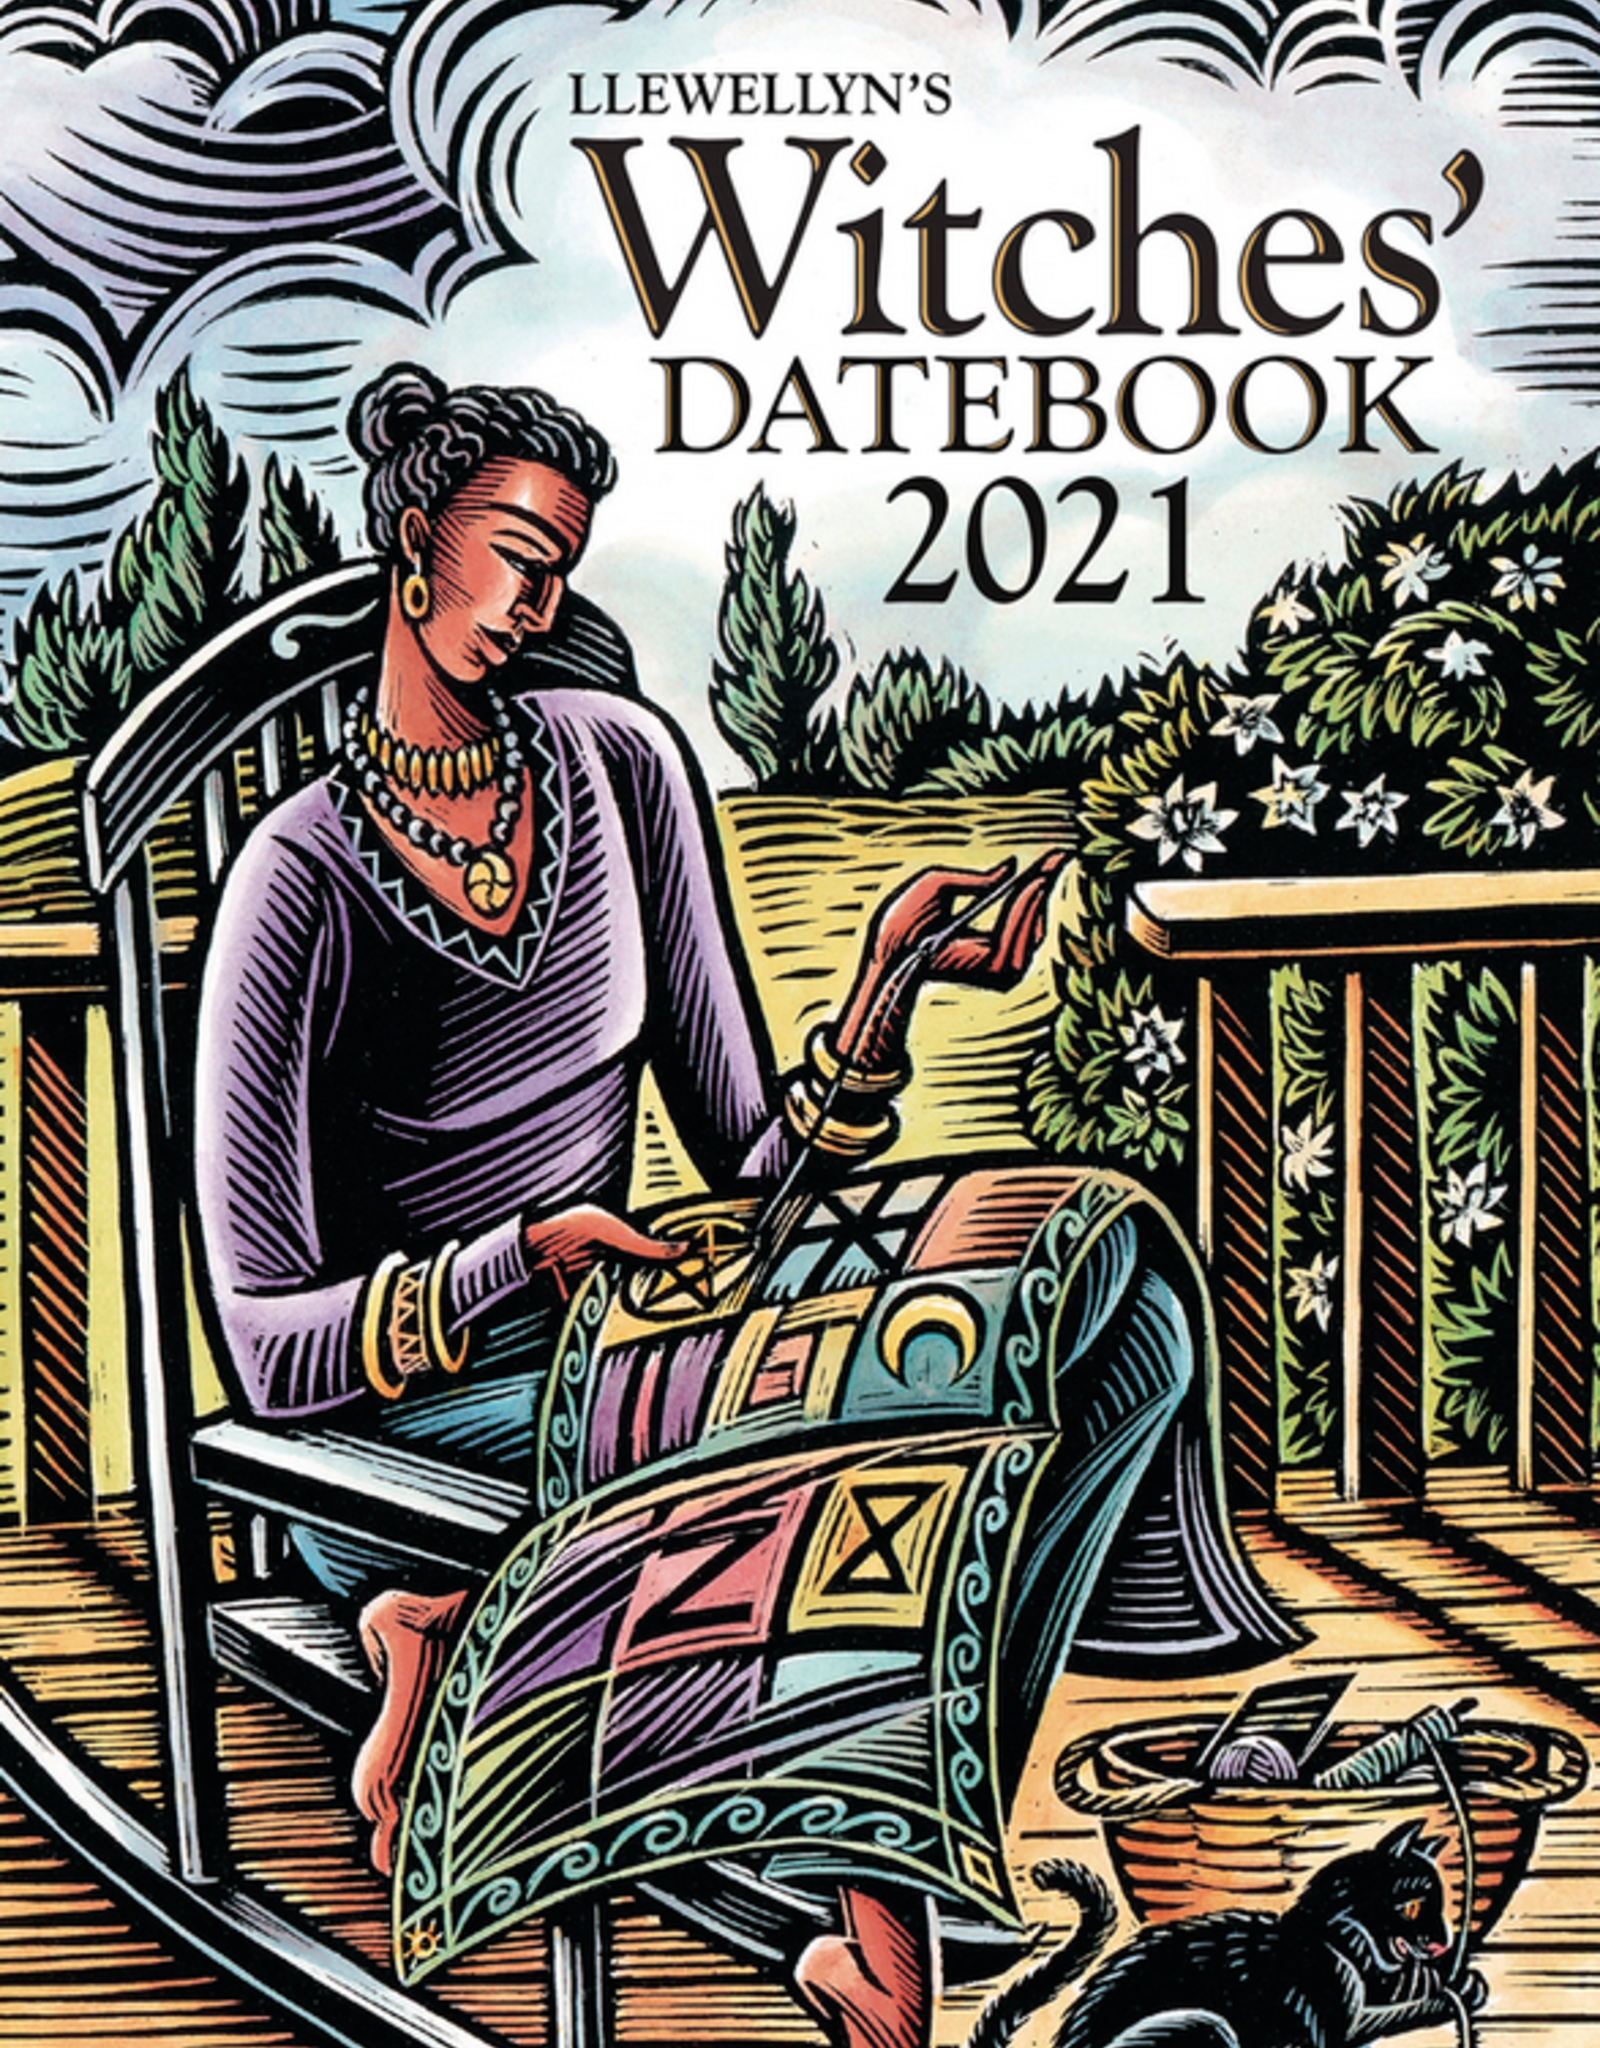 Llewelyn Llewellyn's 2021 Witches' Datebook